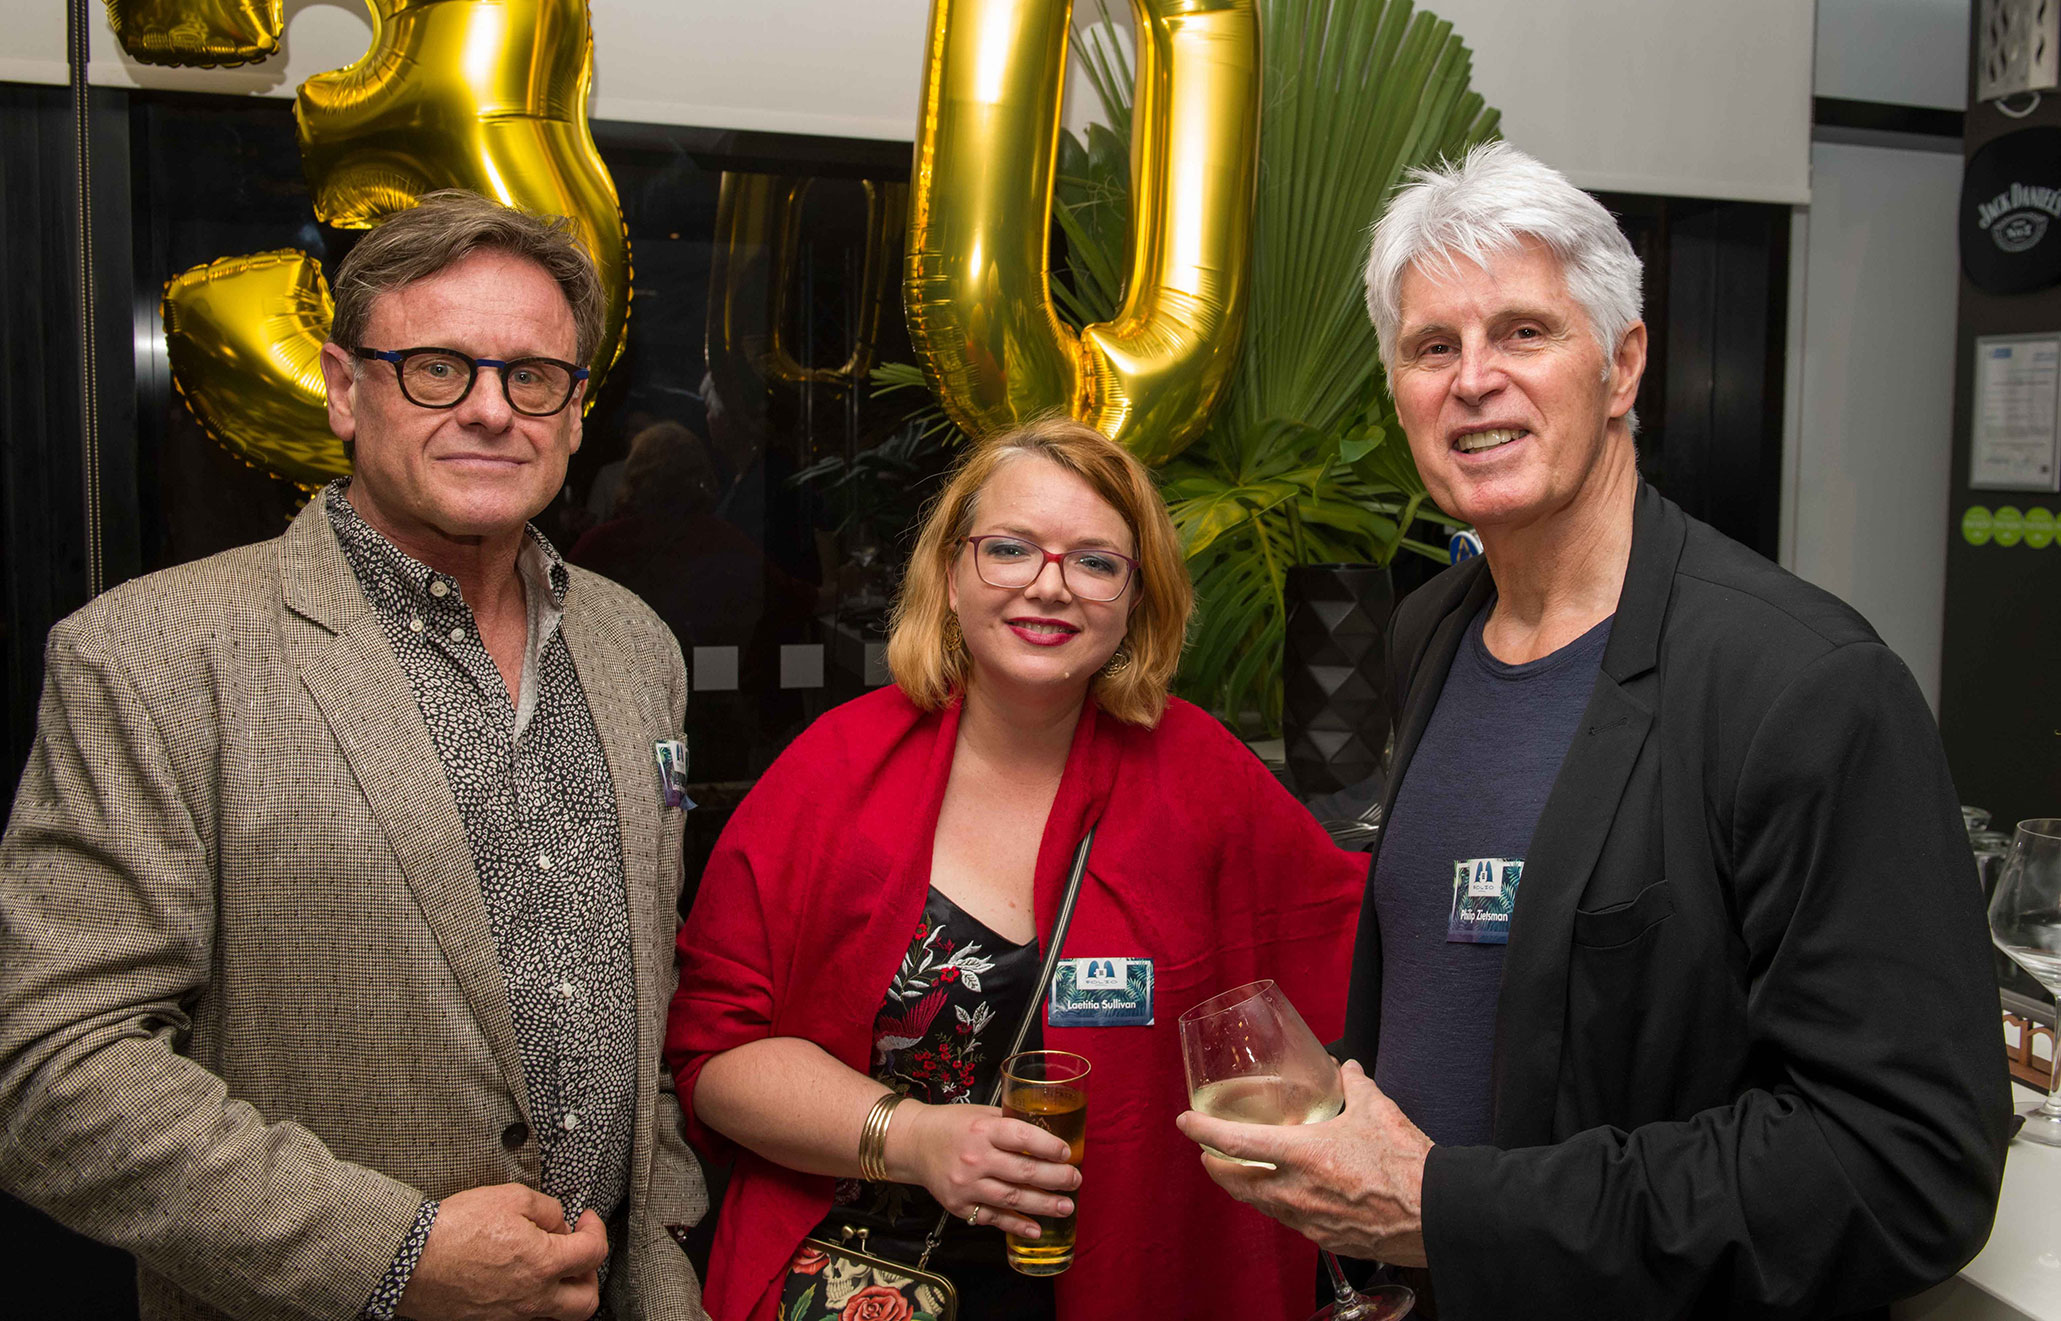 Celebrating Folio's 30th anniversary with staff, freelancers, service providers and friends at The Ghibli Pool Bar & Lounge on 1 December 2018.